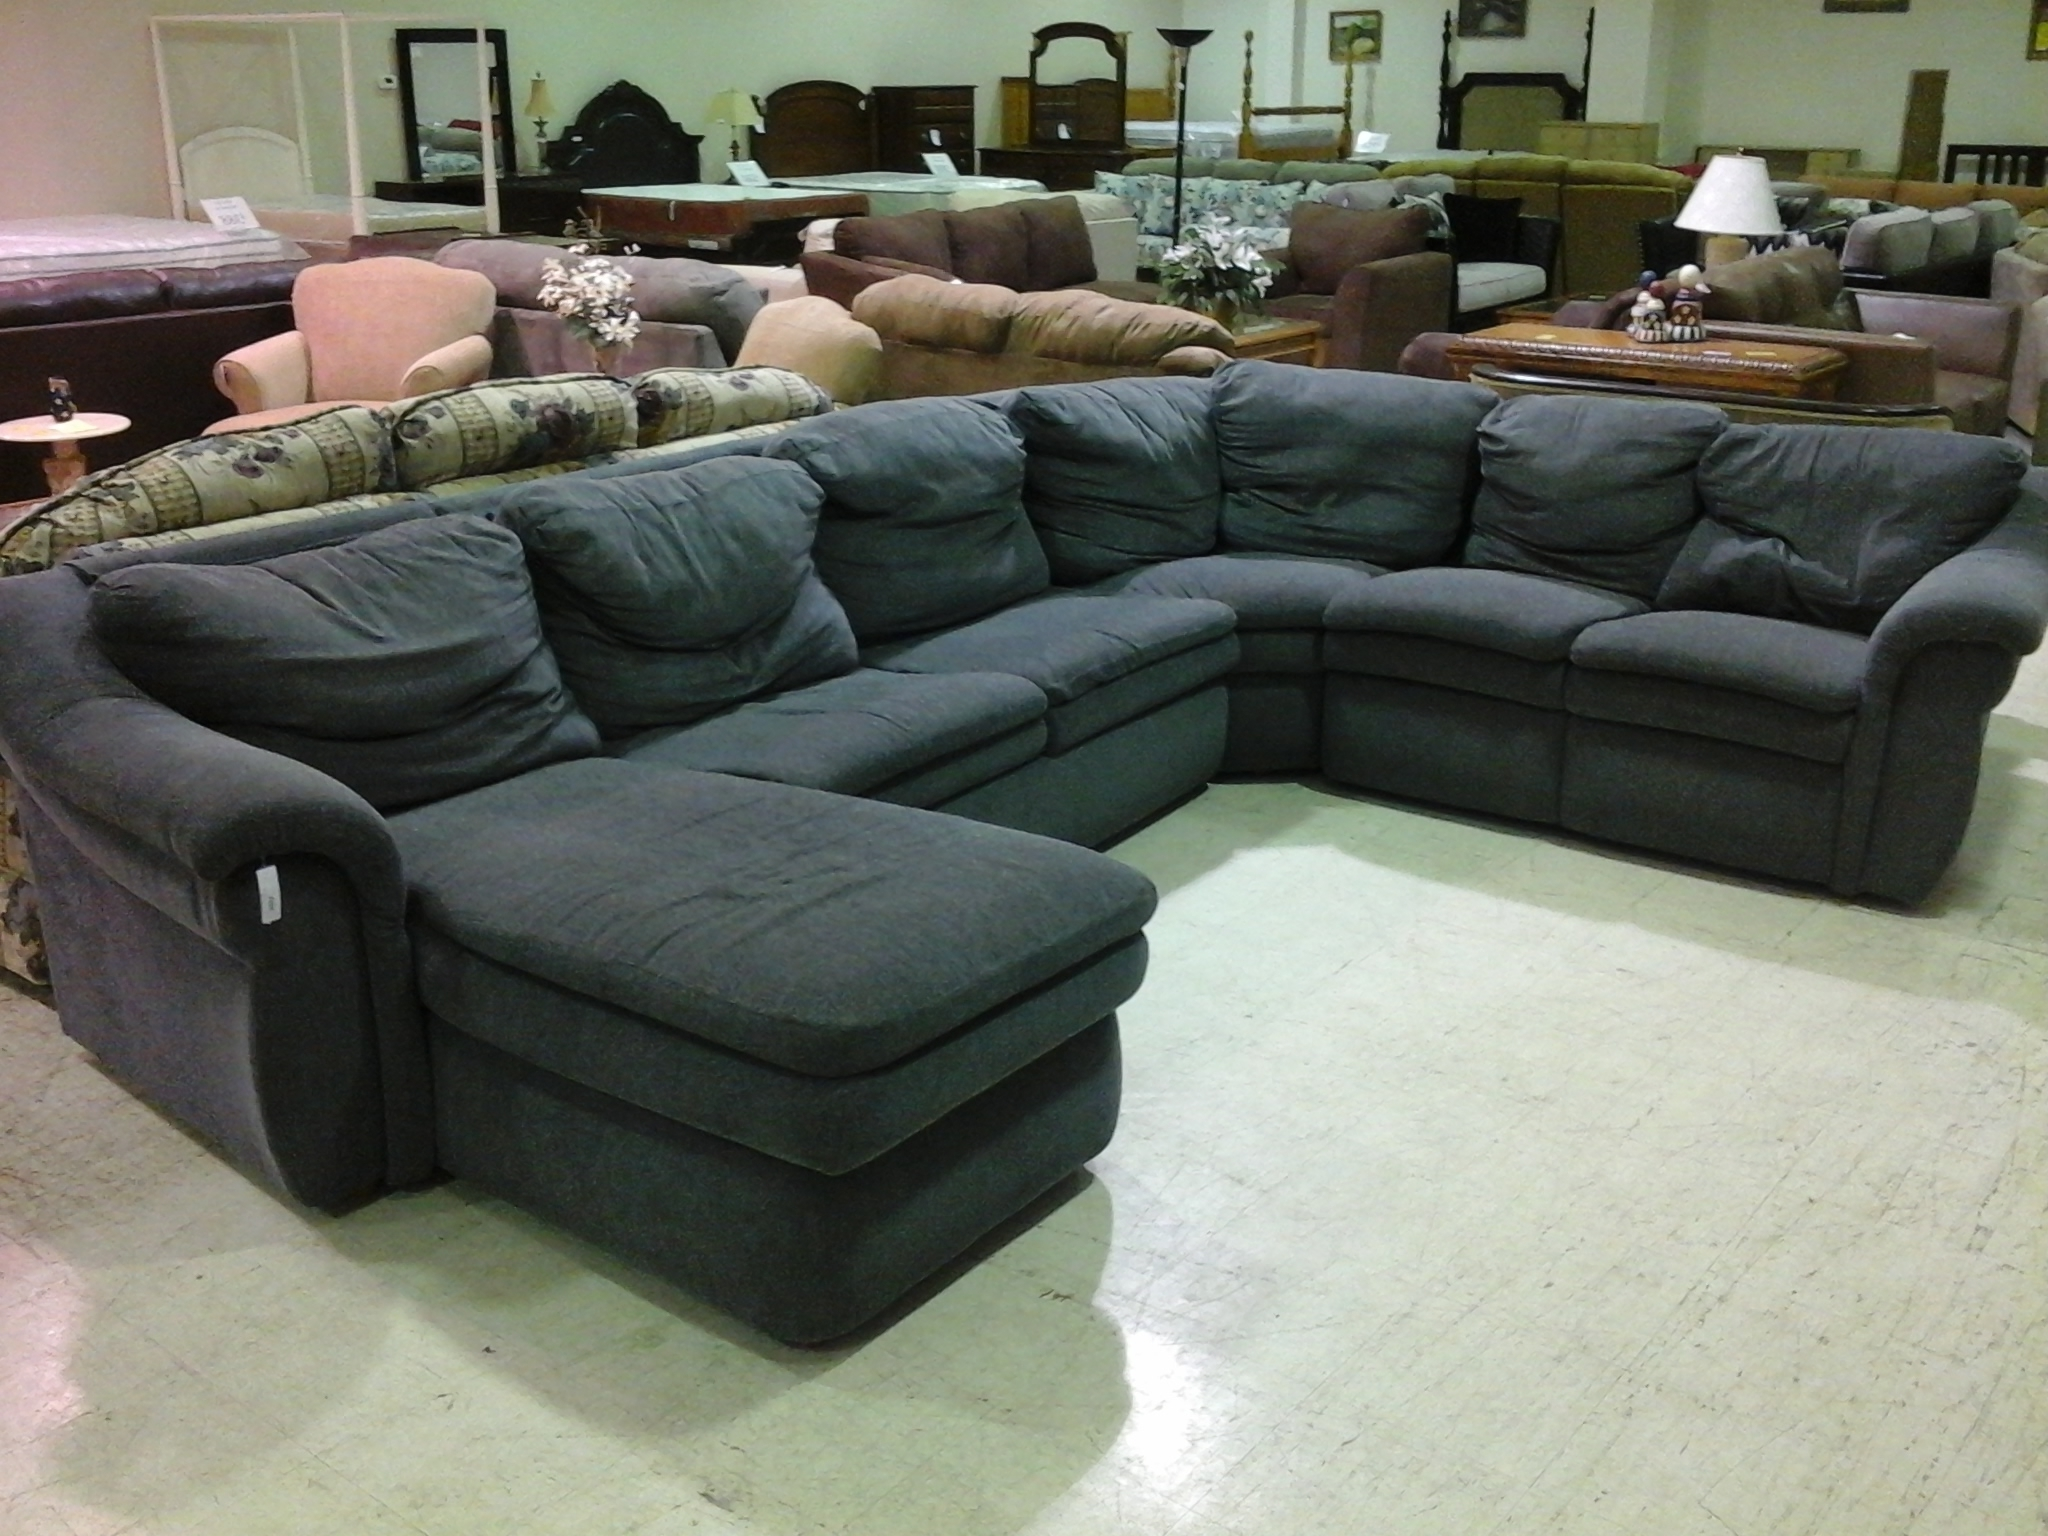 Well Liked Microfiber Sectional Sofa With Sleeper Httpml2R Com Pinterest Intended For Ontario Canada Sectional Sofas (View 2 of 15)